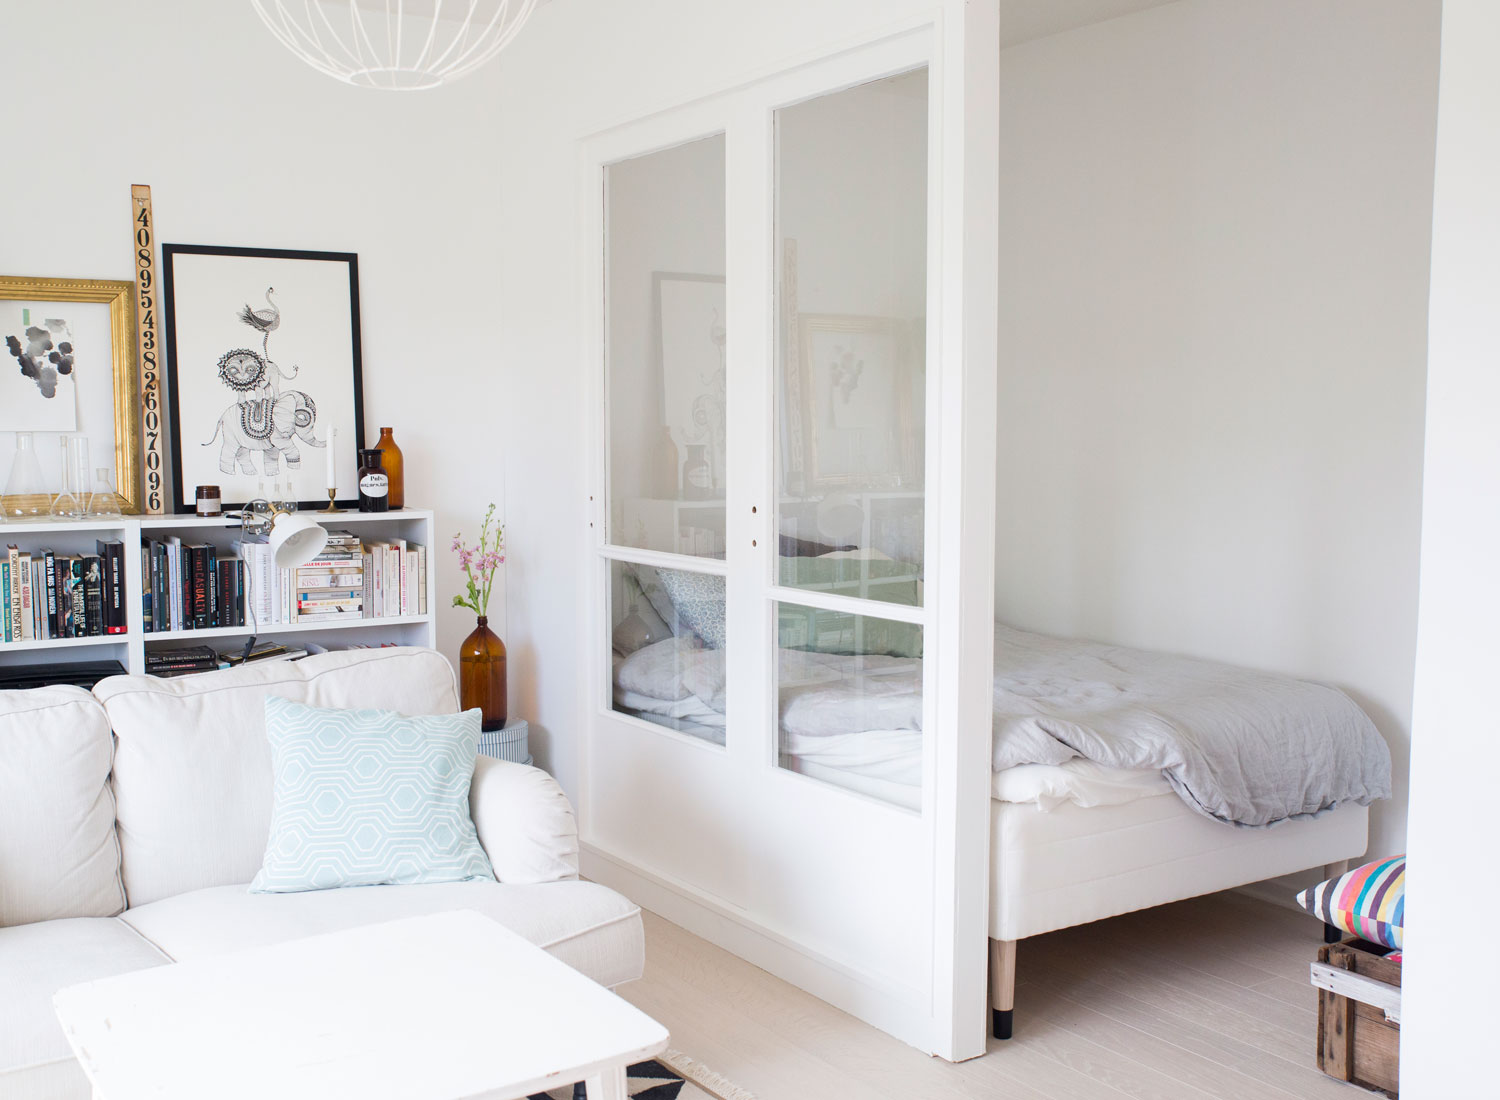 Studio apartment | Home of Emmy Lundström | Ennui blog